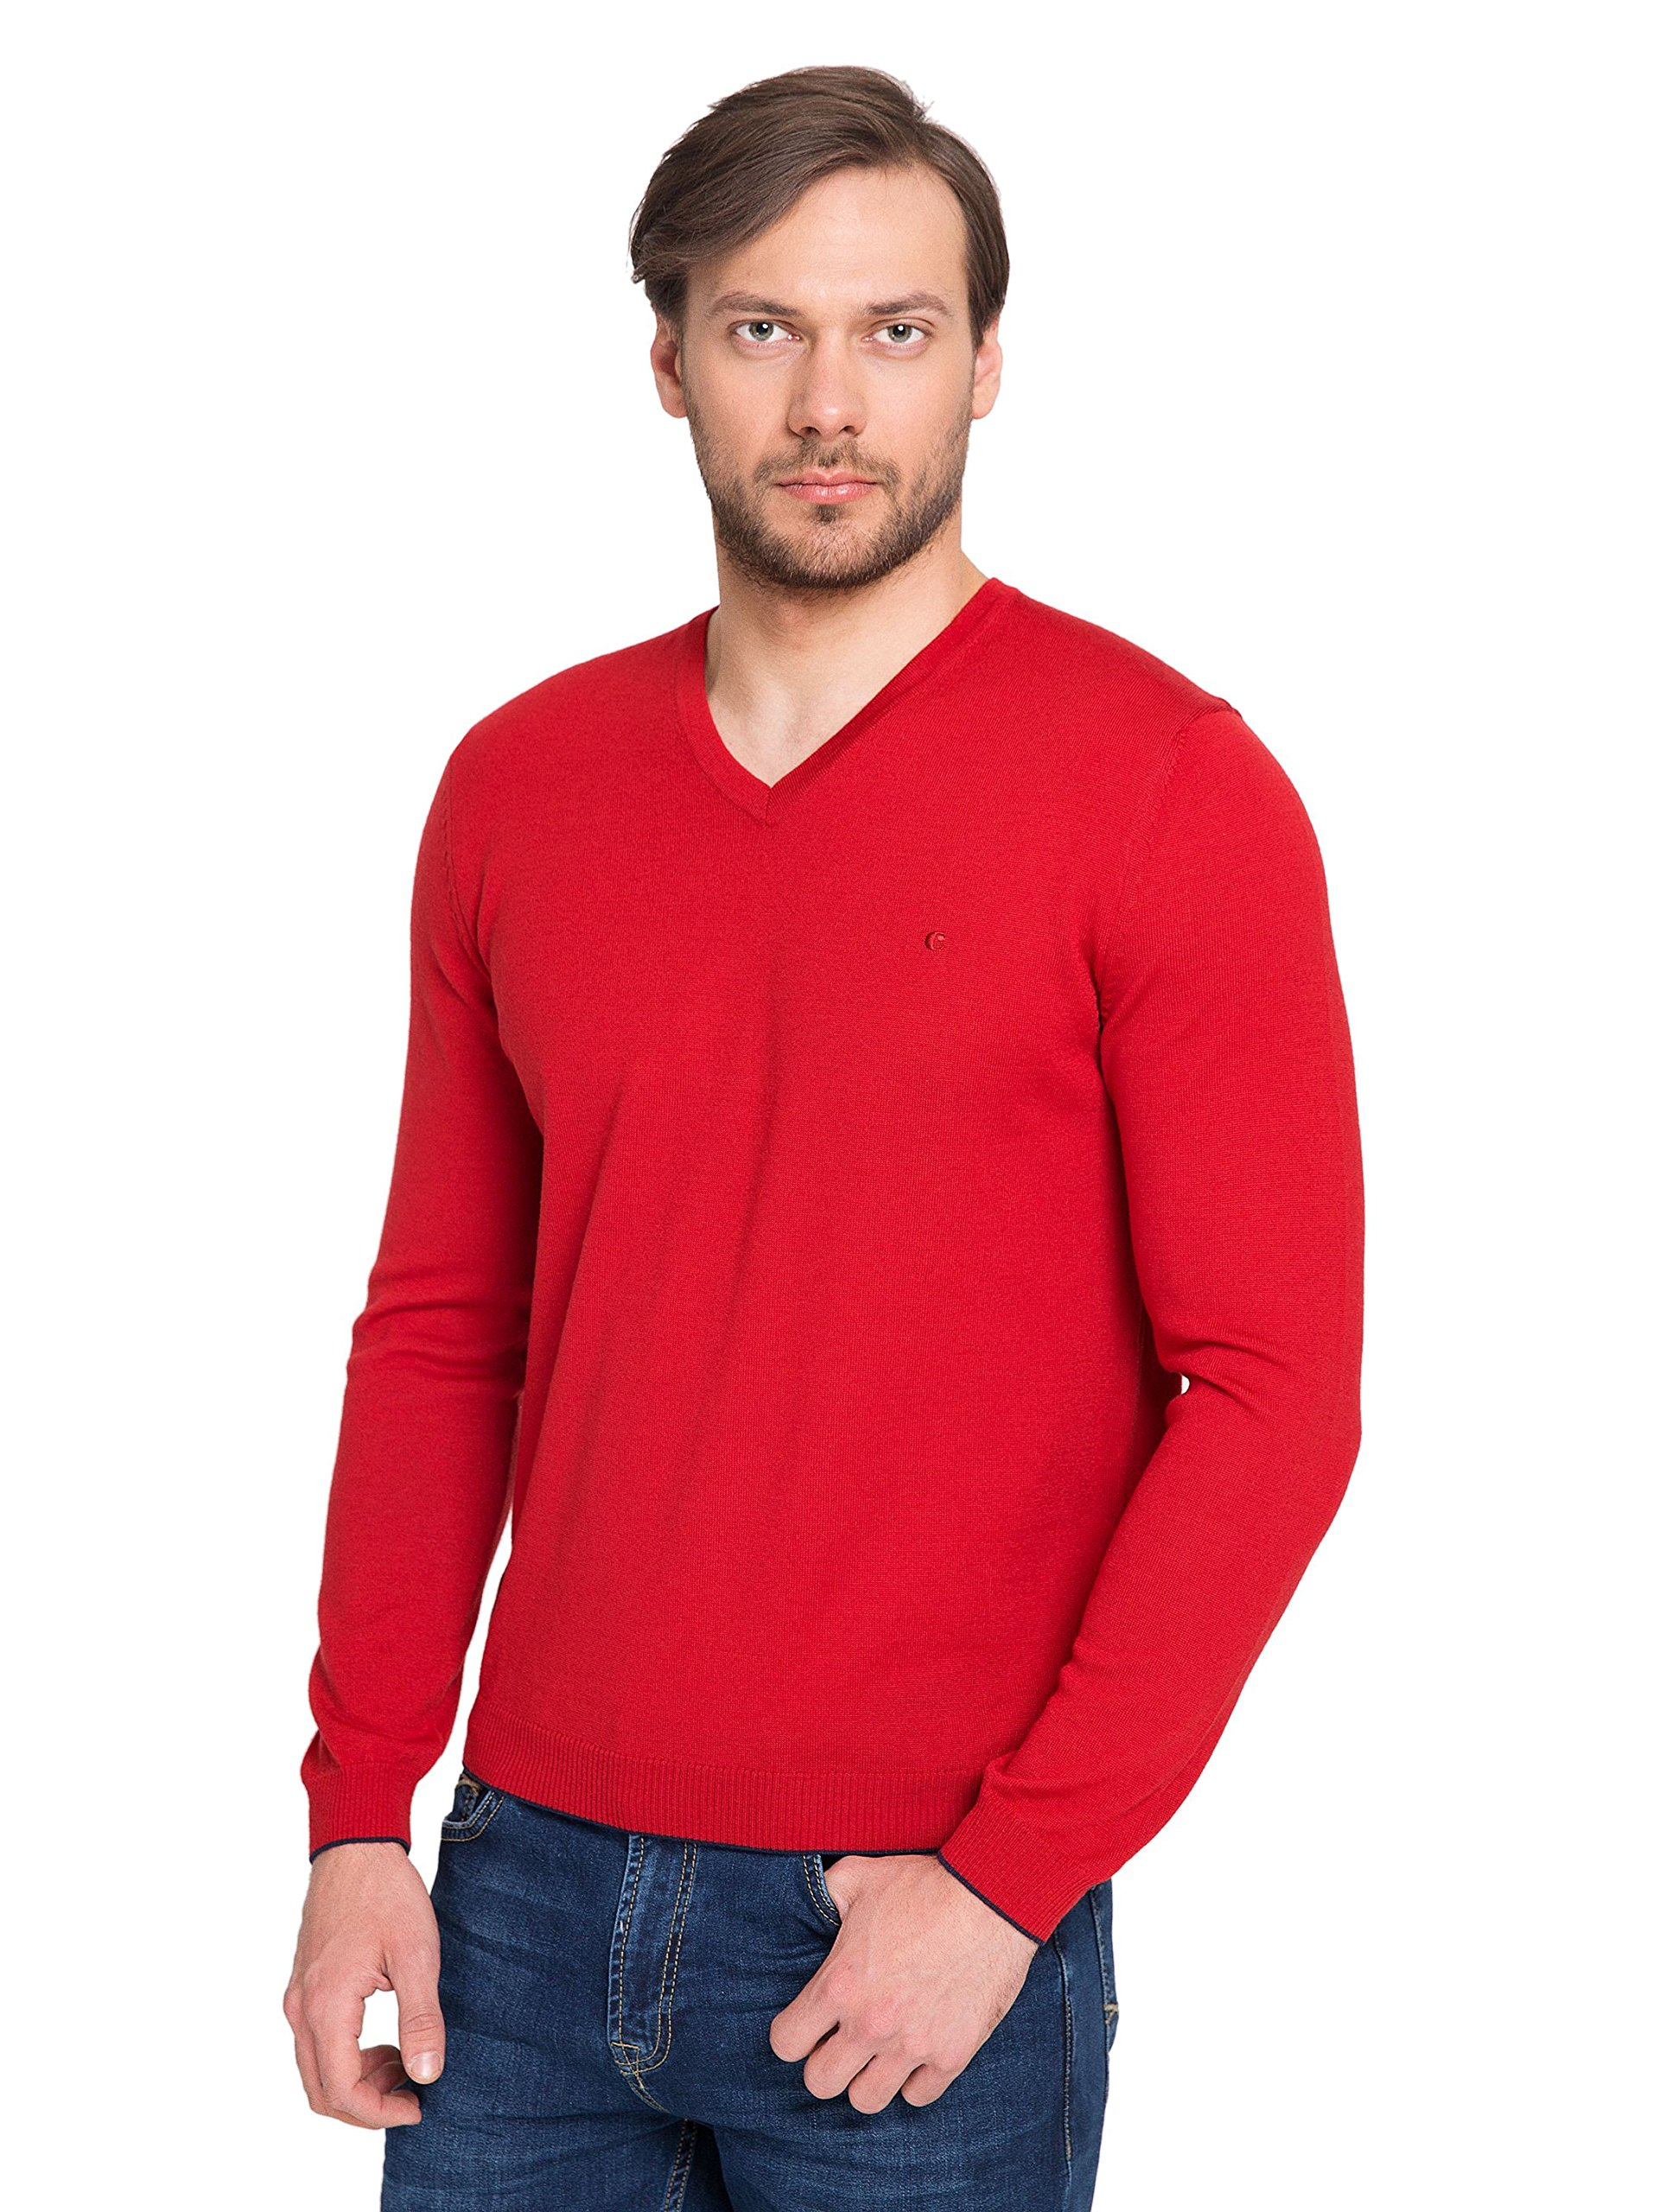 Cacharel Men's 100% Merino Wool (Extra Fine Wool), V Neck, Long Sleeve, Slim Fit Sweater (Red)